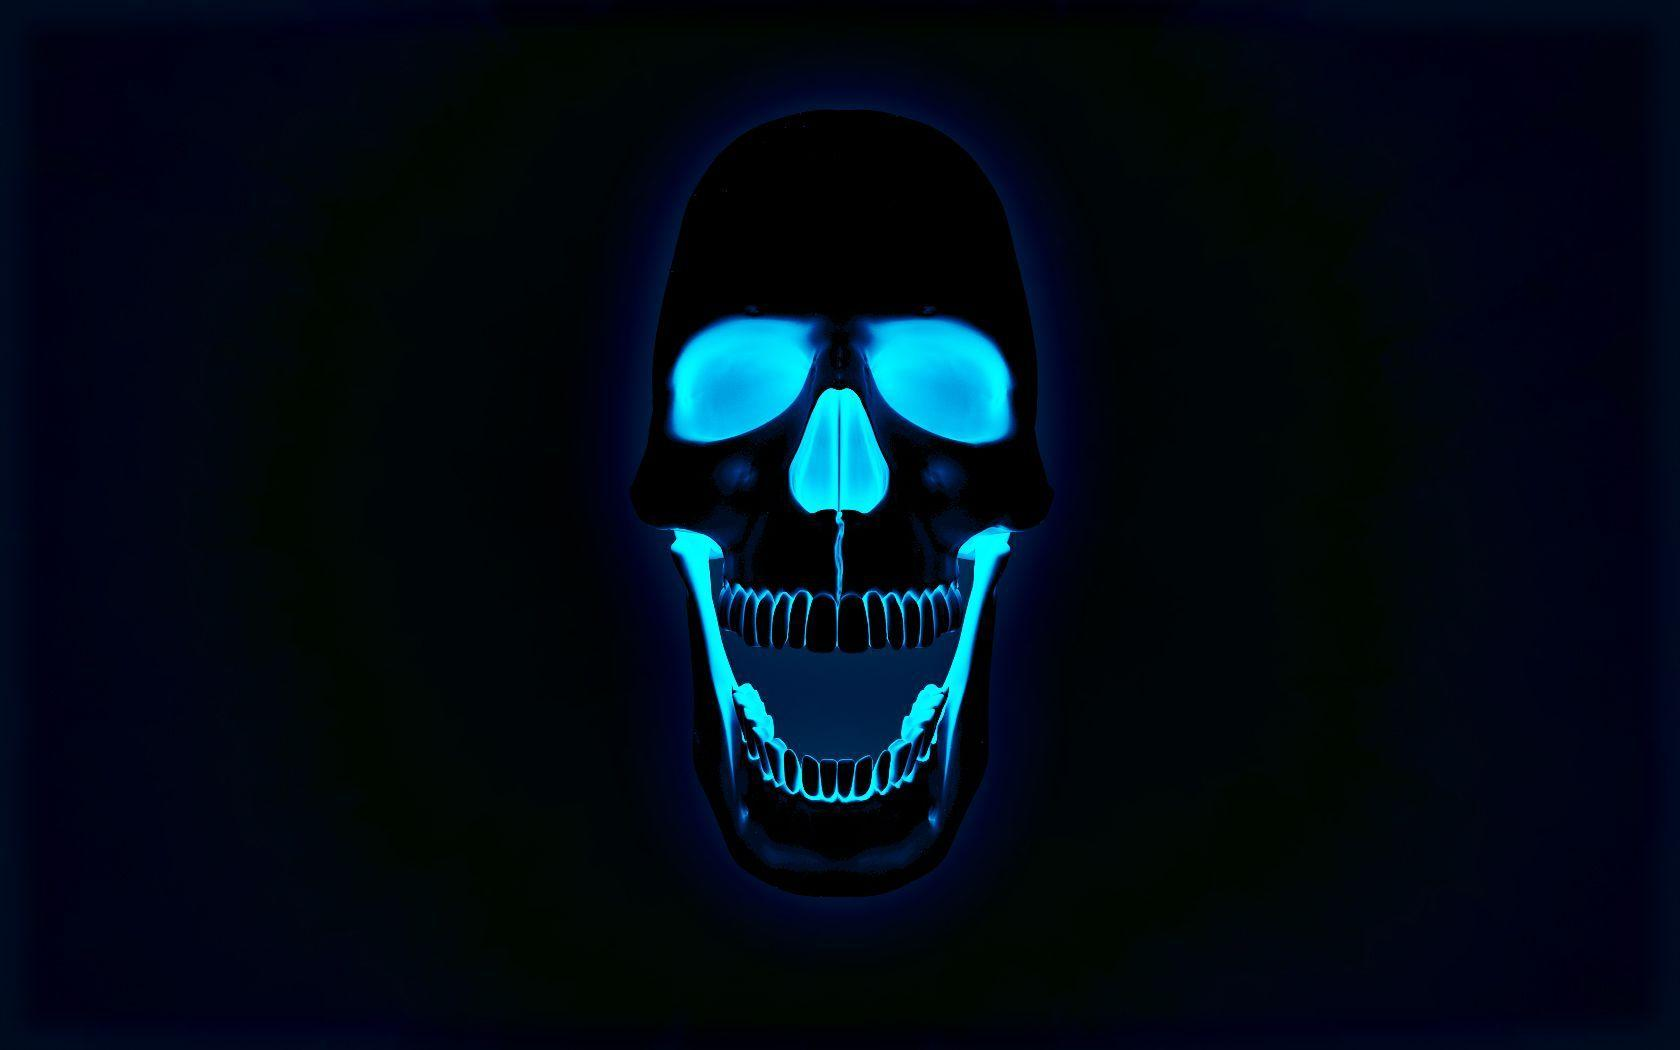 Download Skull Wallpapers Hd Resolution Is Cool Wallpapers at